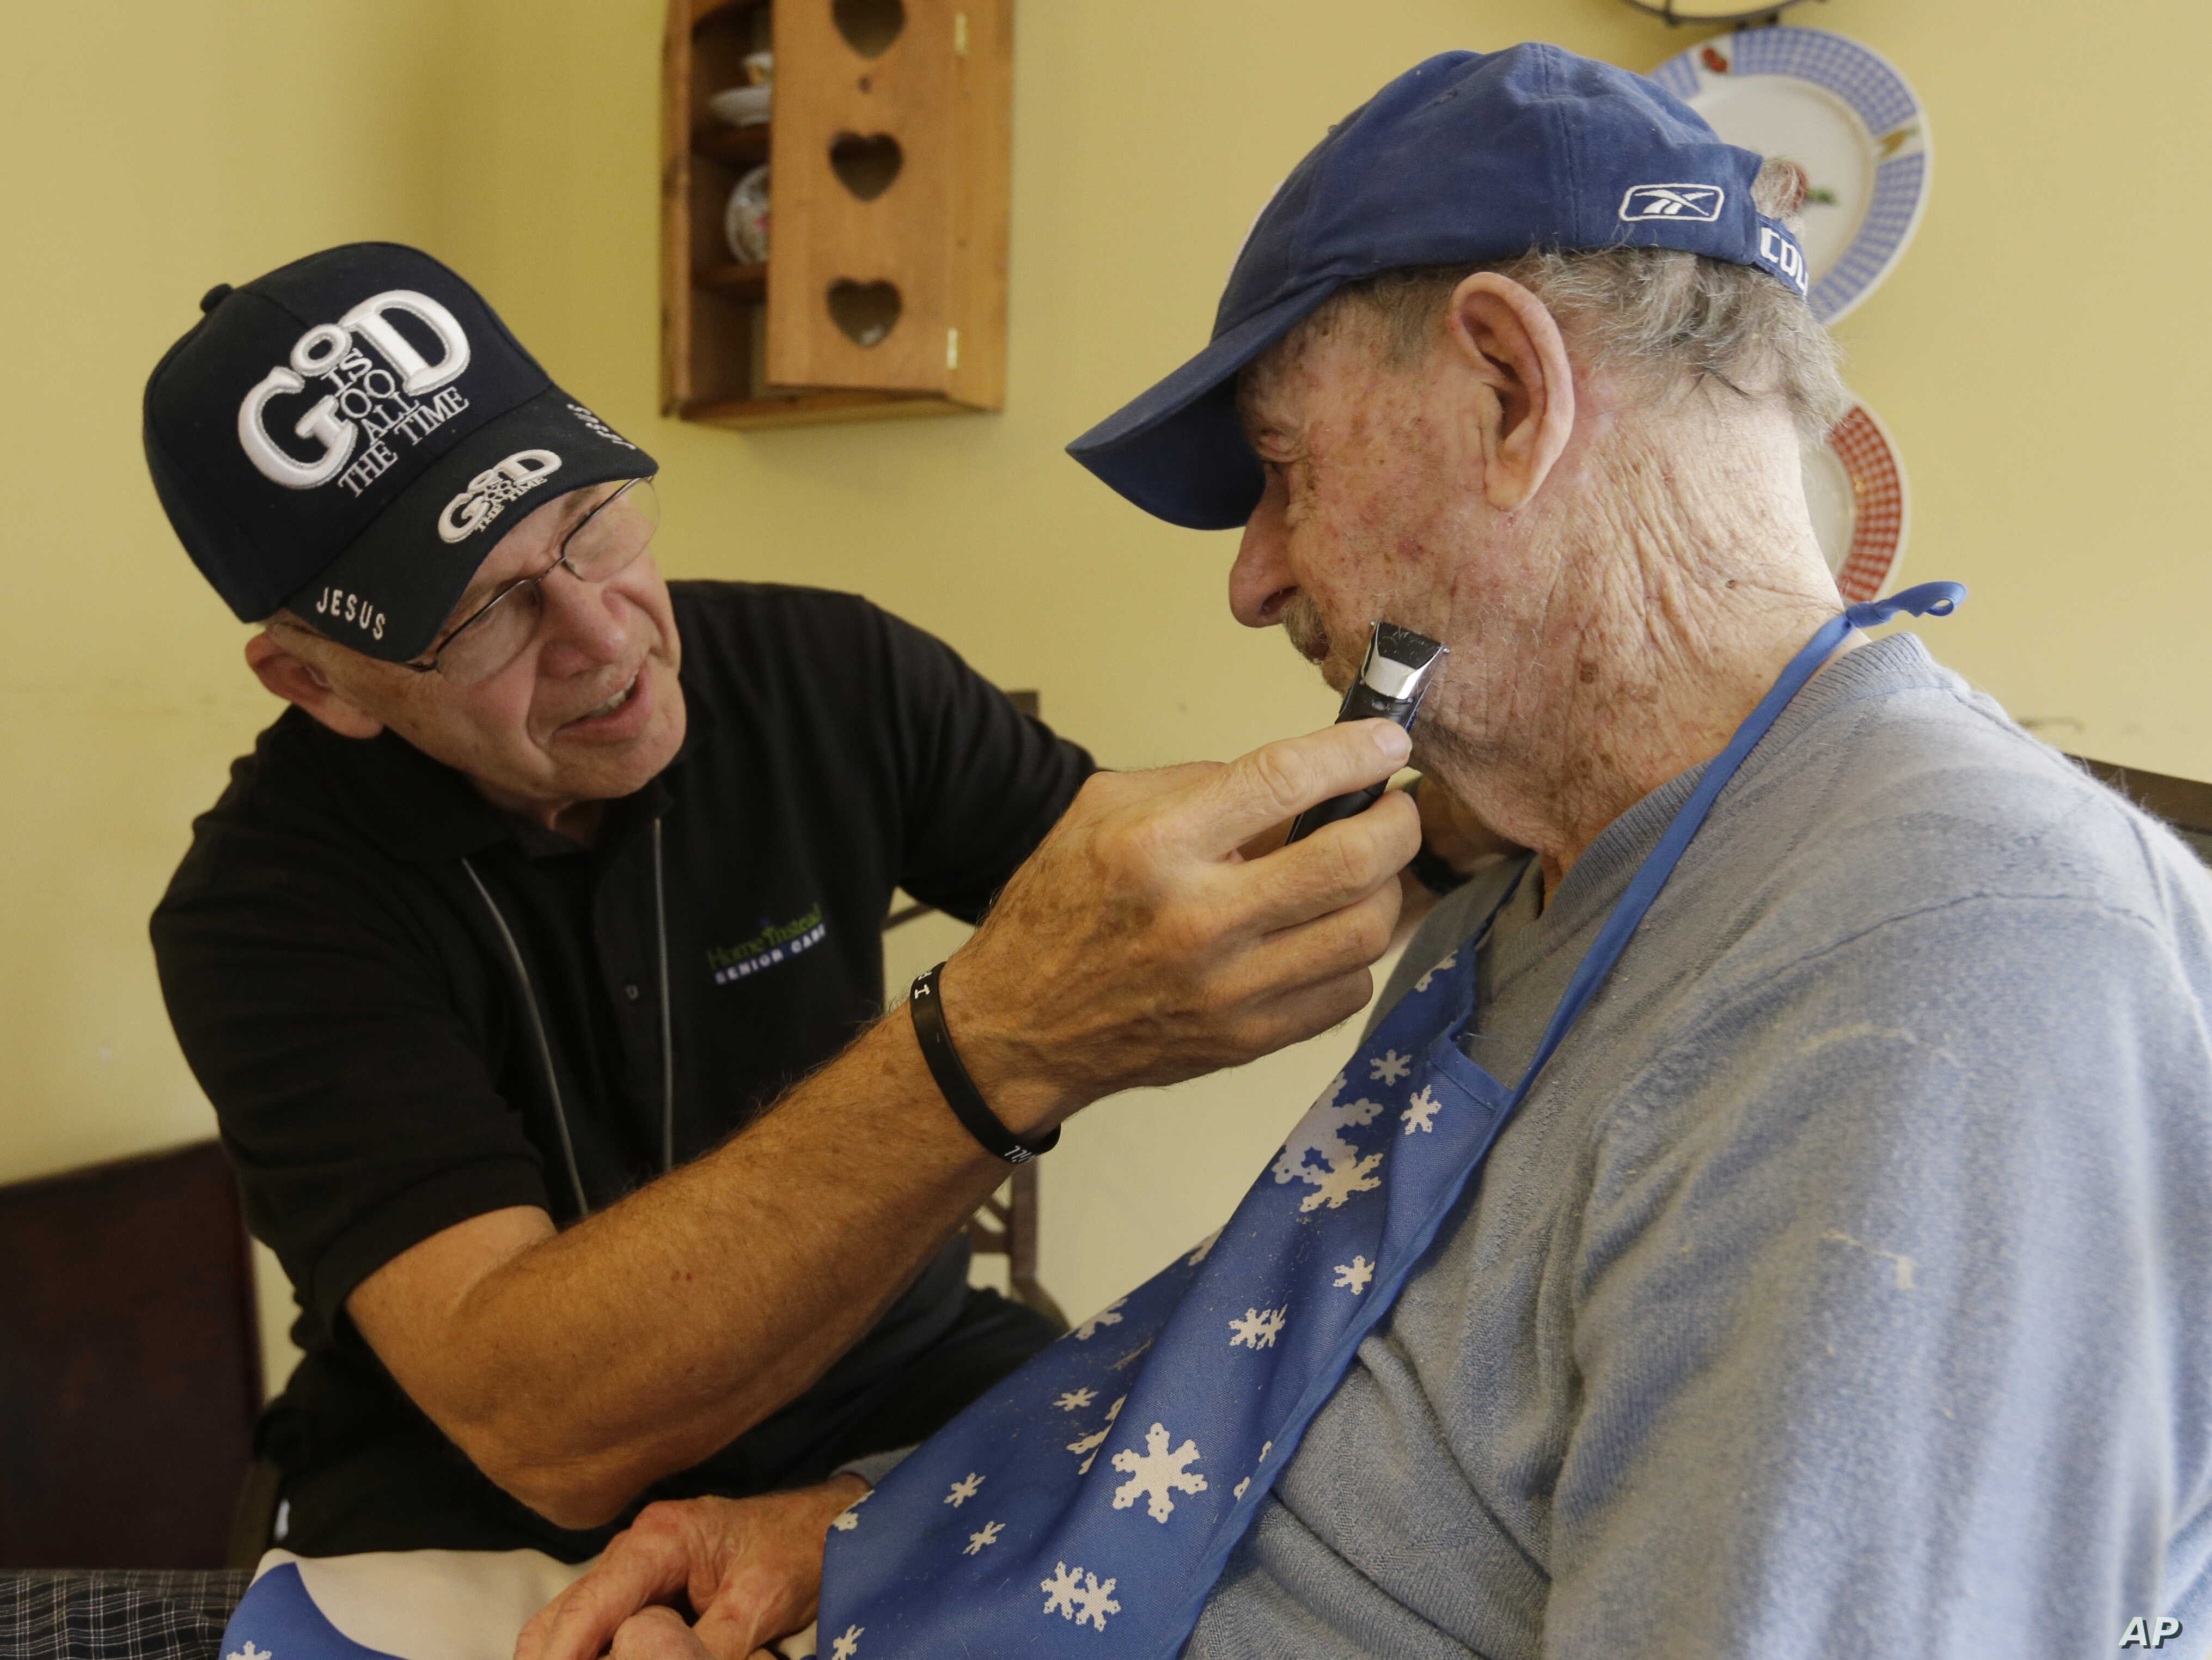 FILE -- Caregiver Warren Manchess, 74, left, shaves Paul Gregoline, 92, in Noblesville, Indiana. The share of the U.S. population over age 60 is expected to rise by 40 percent between 2010 and 2050.